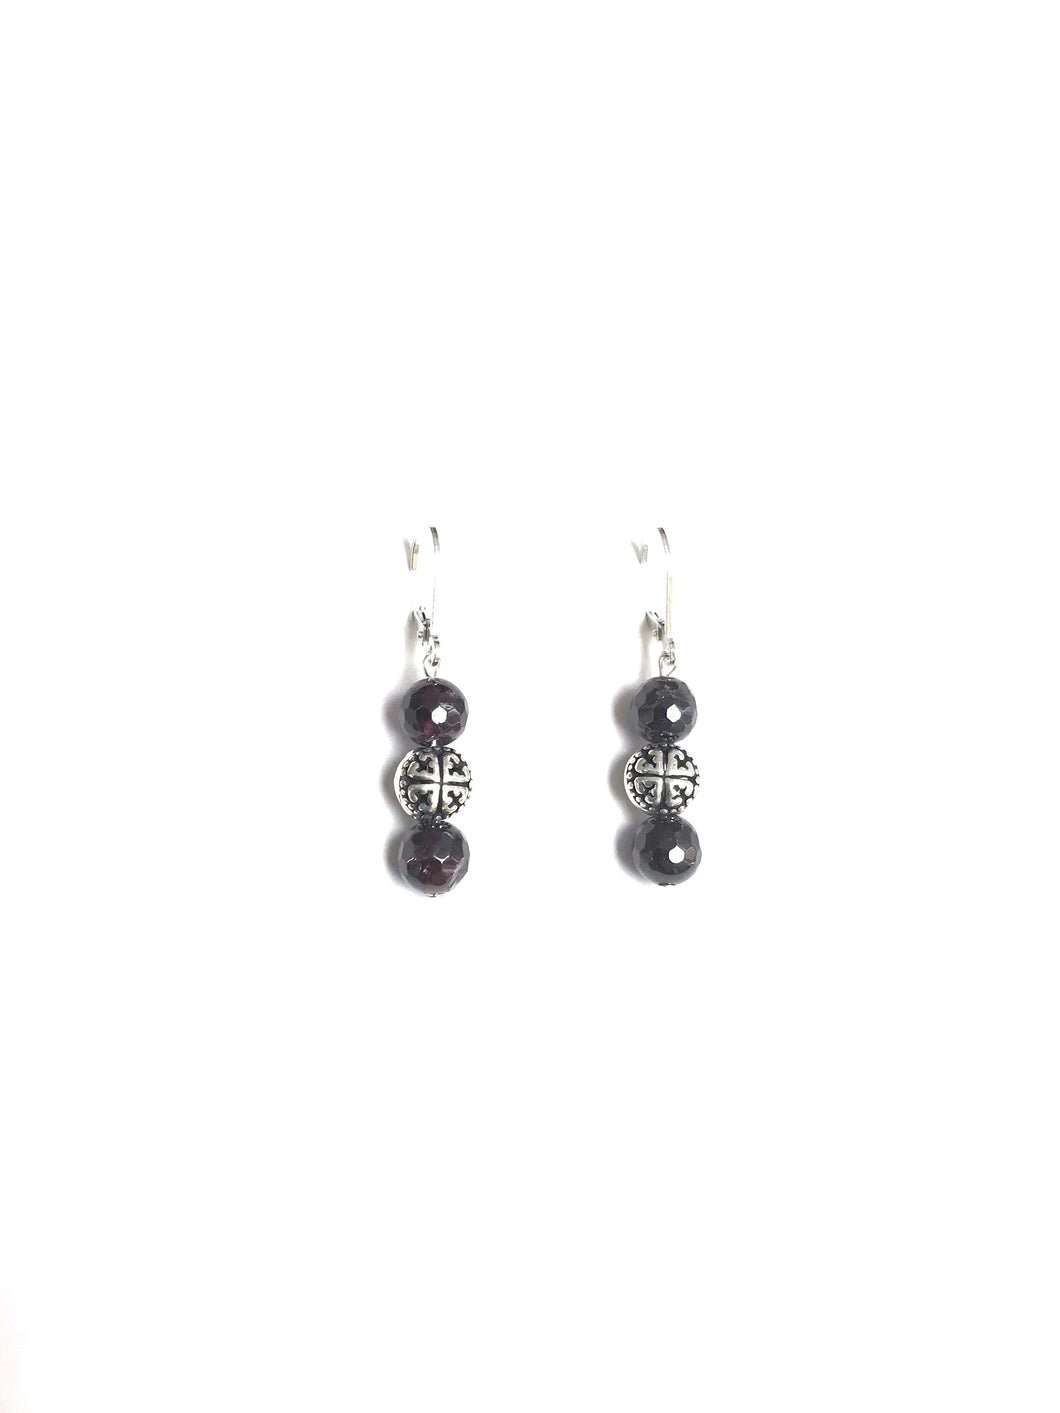 Garnet Earrings!